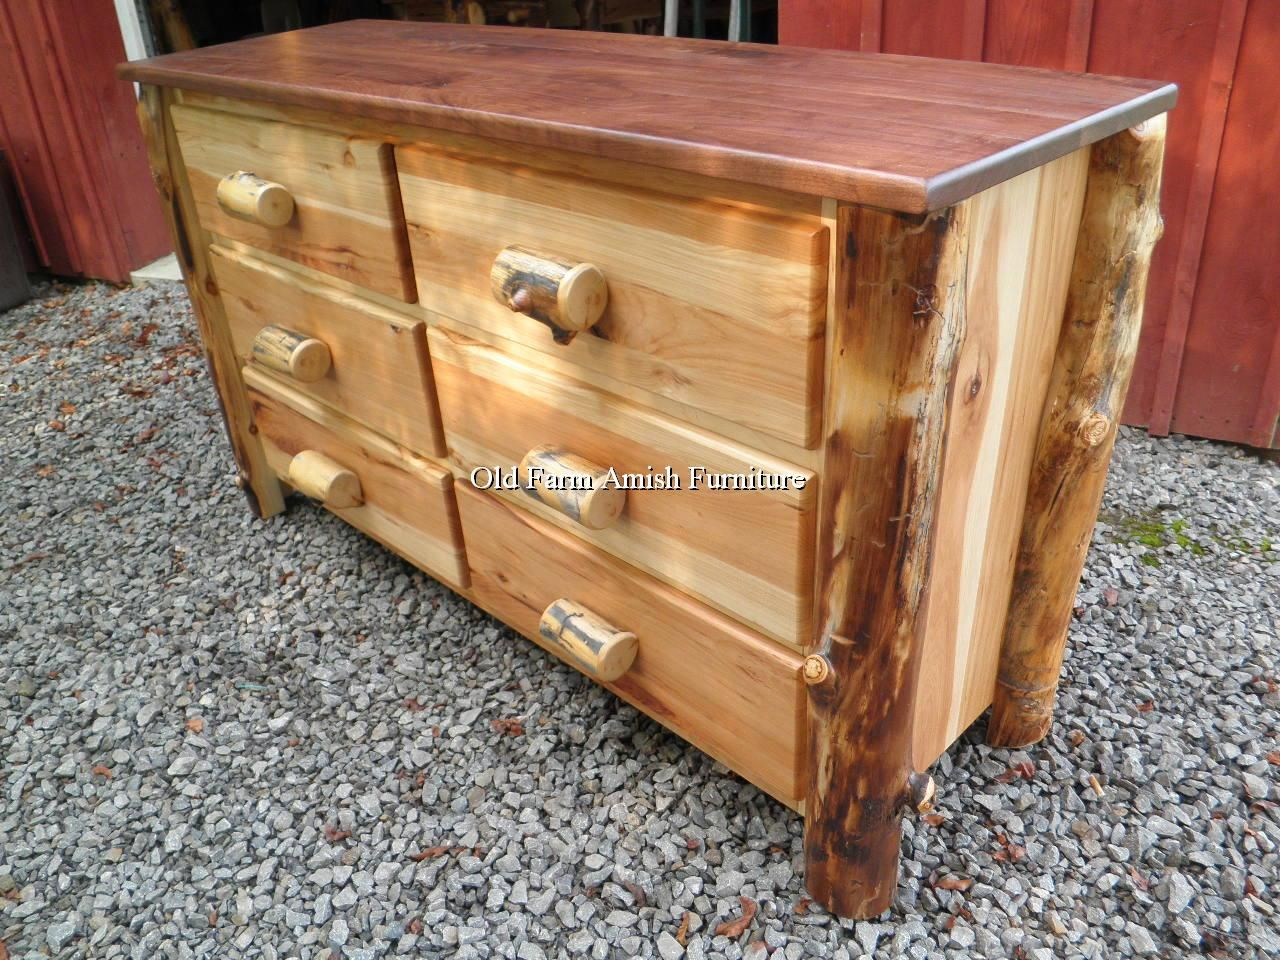 Aspen Log Dresser Old Farm Amish Furniture - Dayton, PA (814) 257-8911 Visit our Facebook Page :)